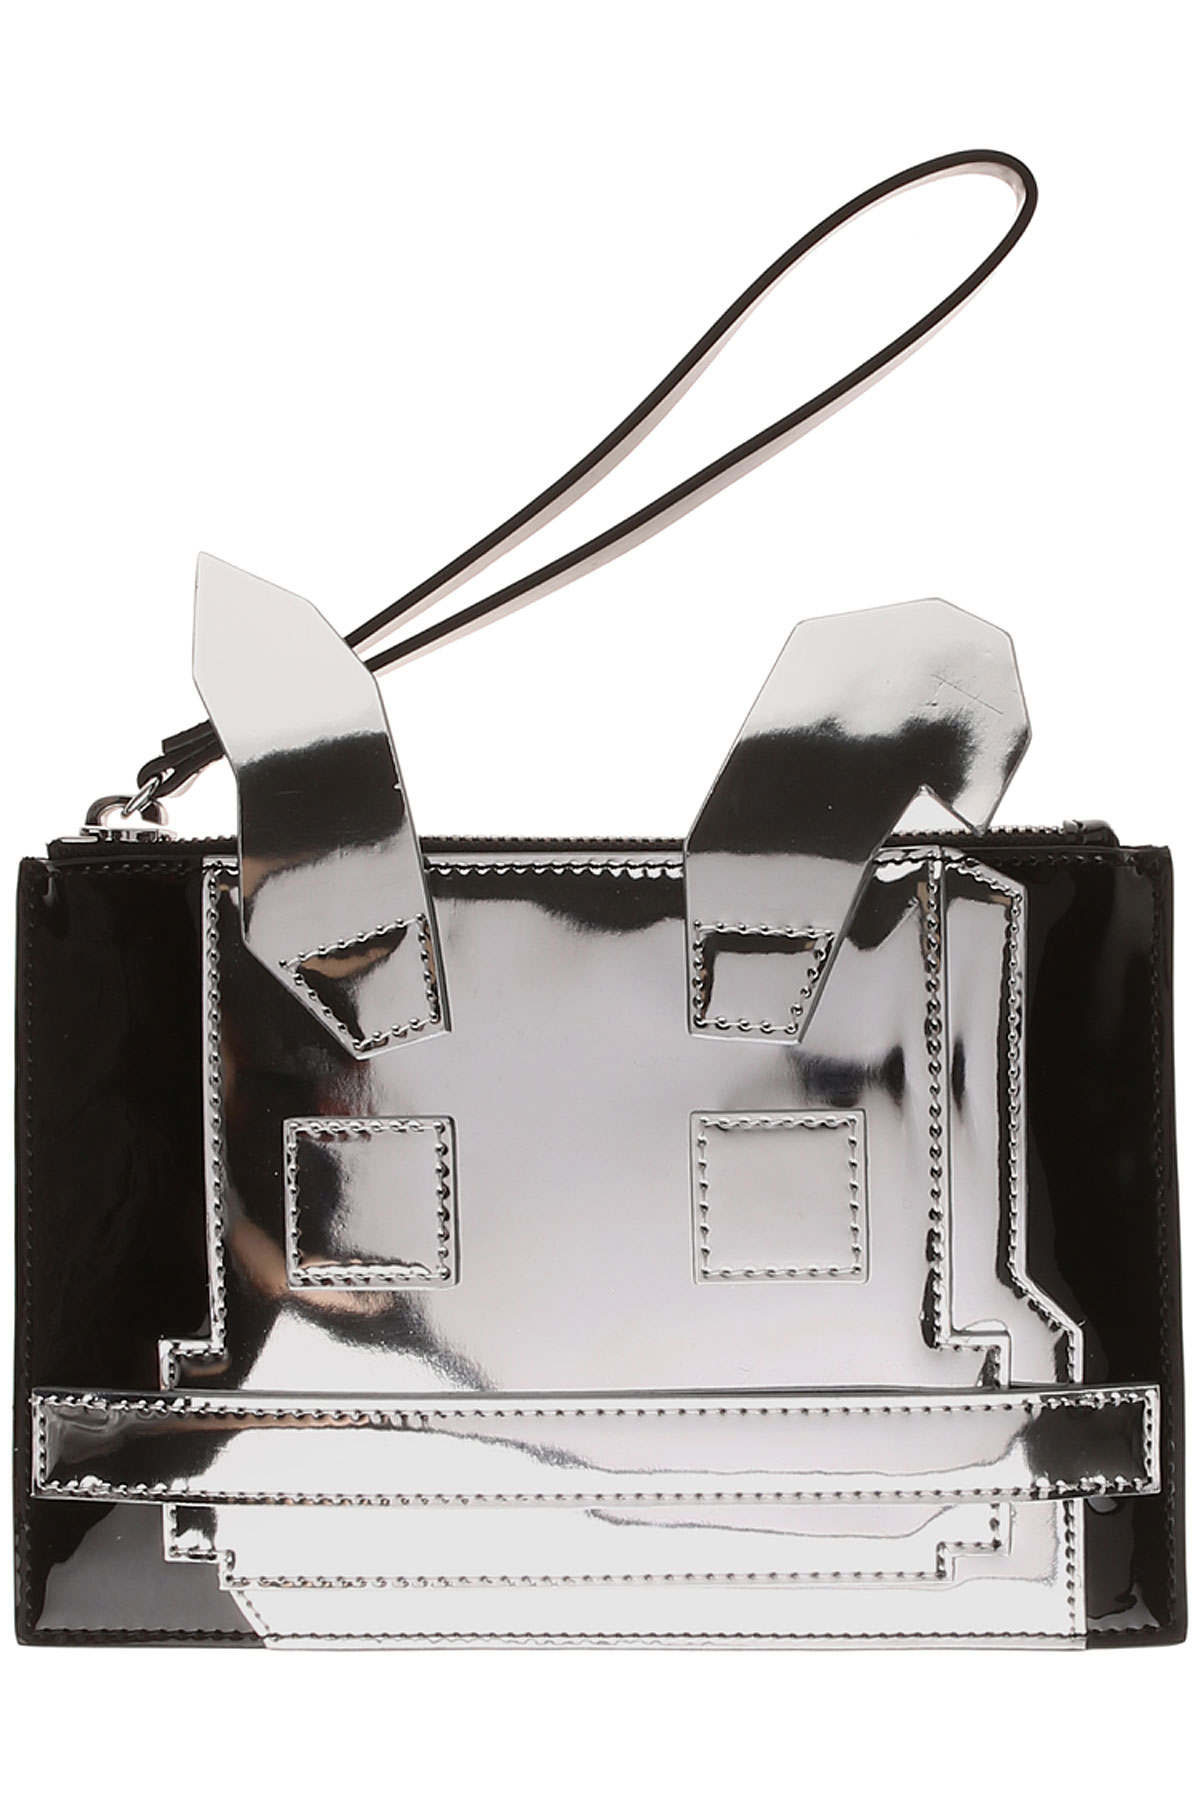 Image of Alexander McQueen McQ Women\'s Pouch On Sale, Silver, Patent Leather, 2017